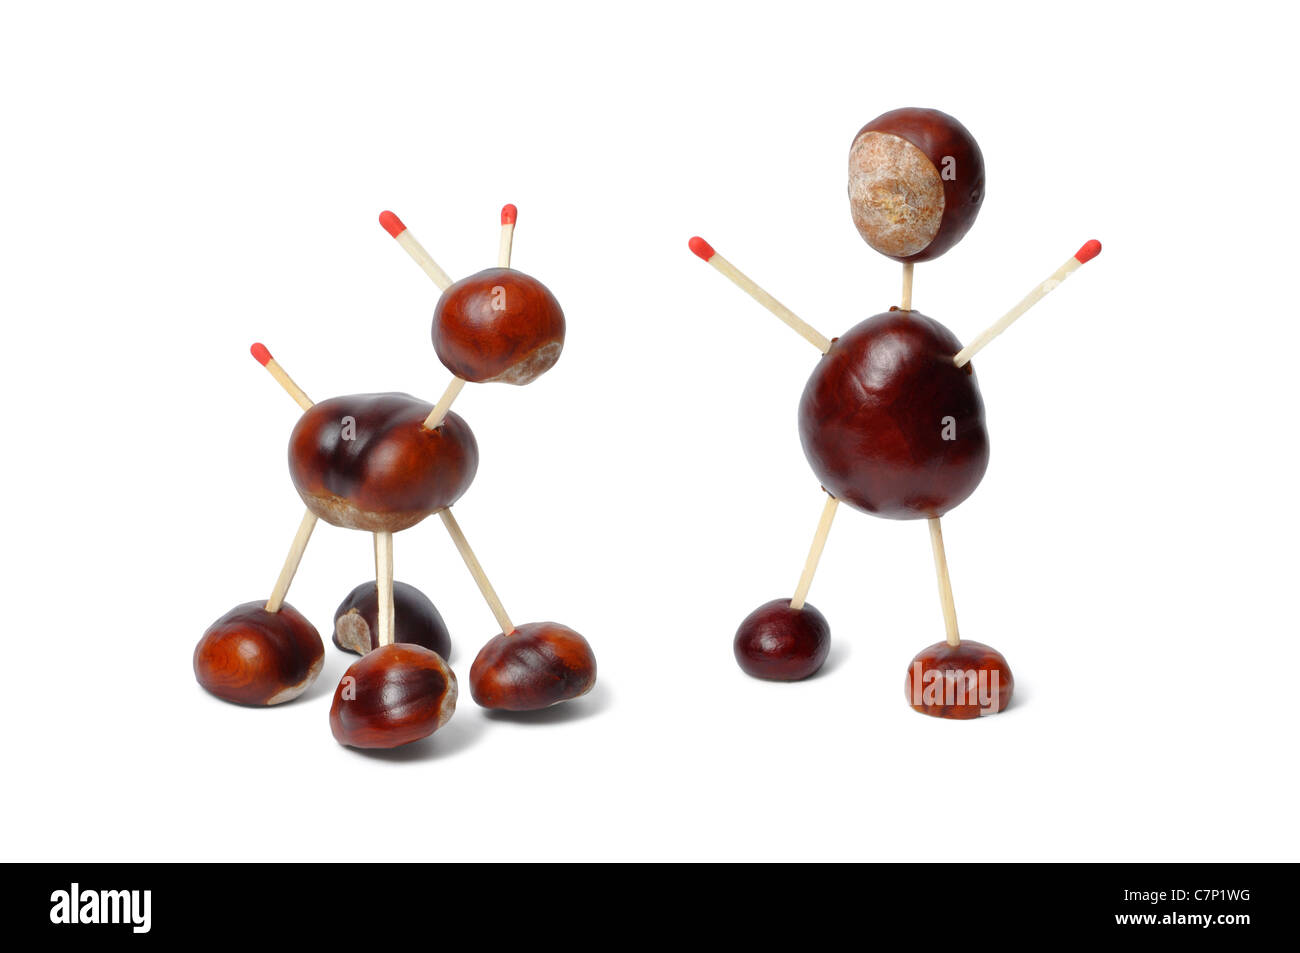 Chestnuts Toys - Stock Image